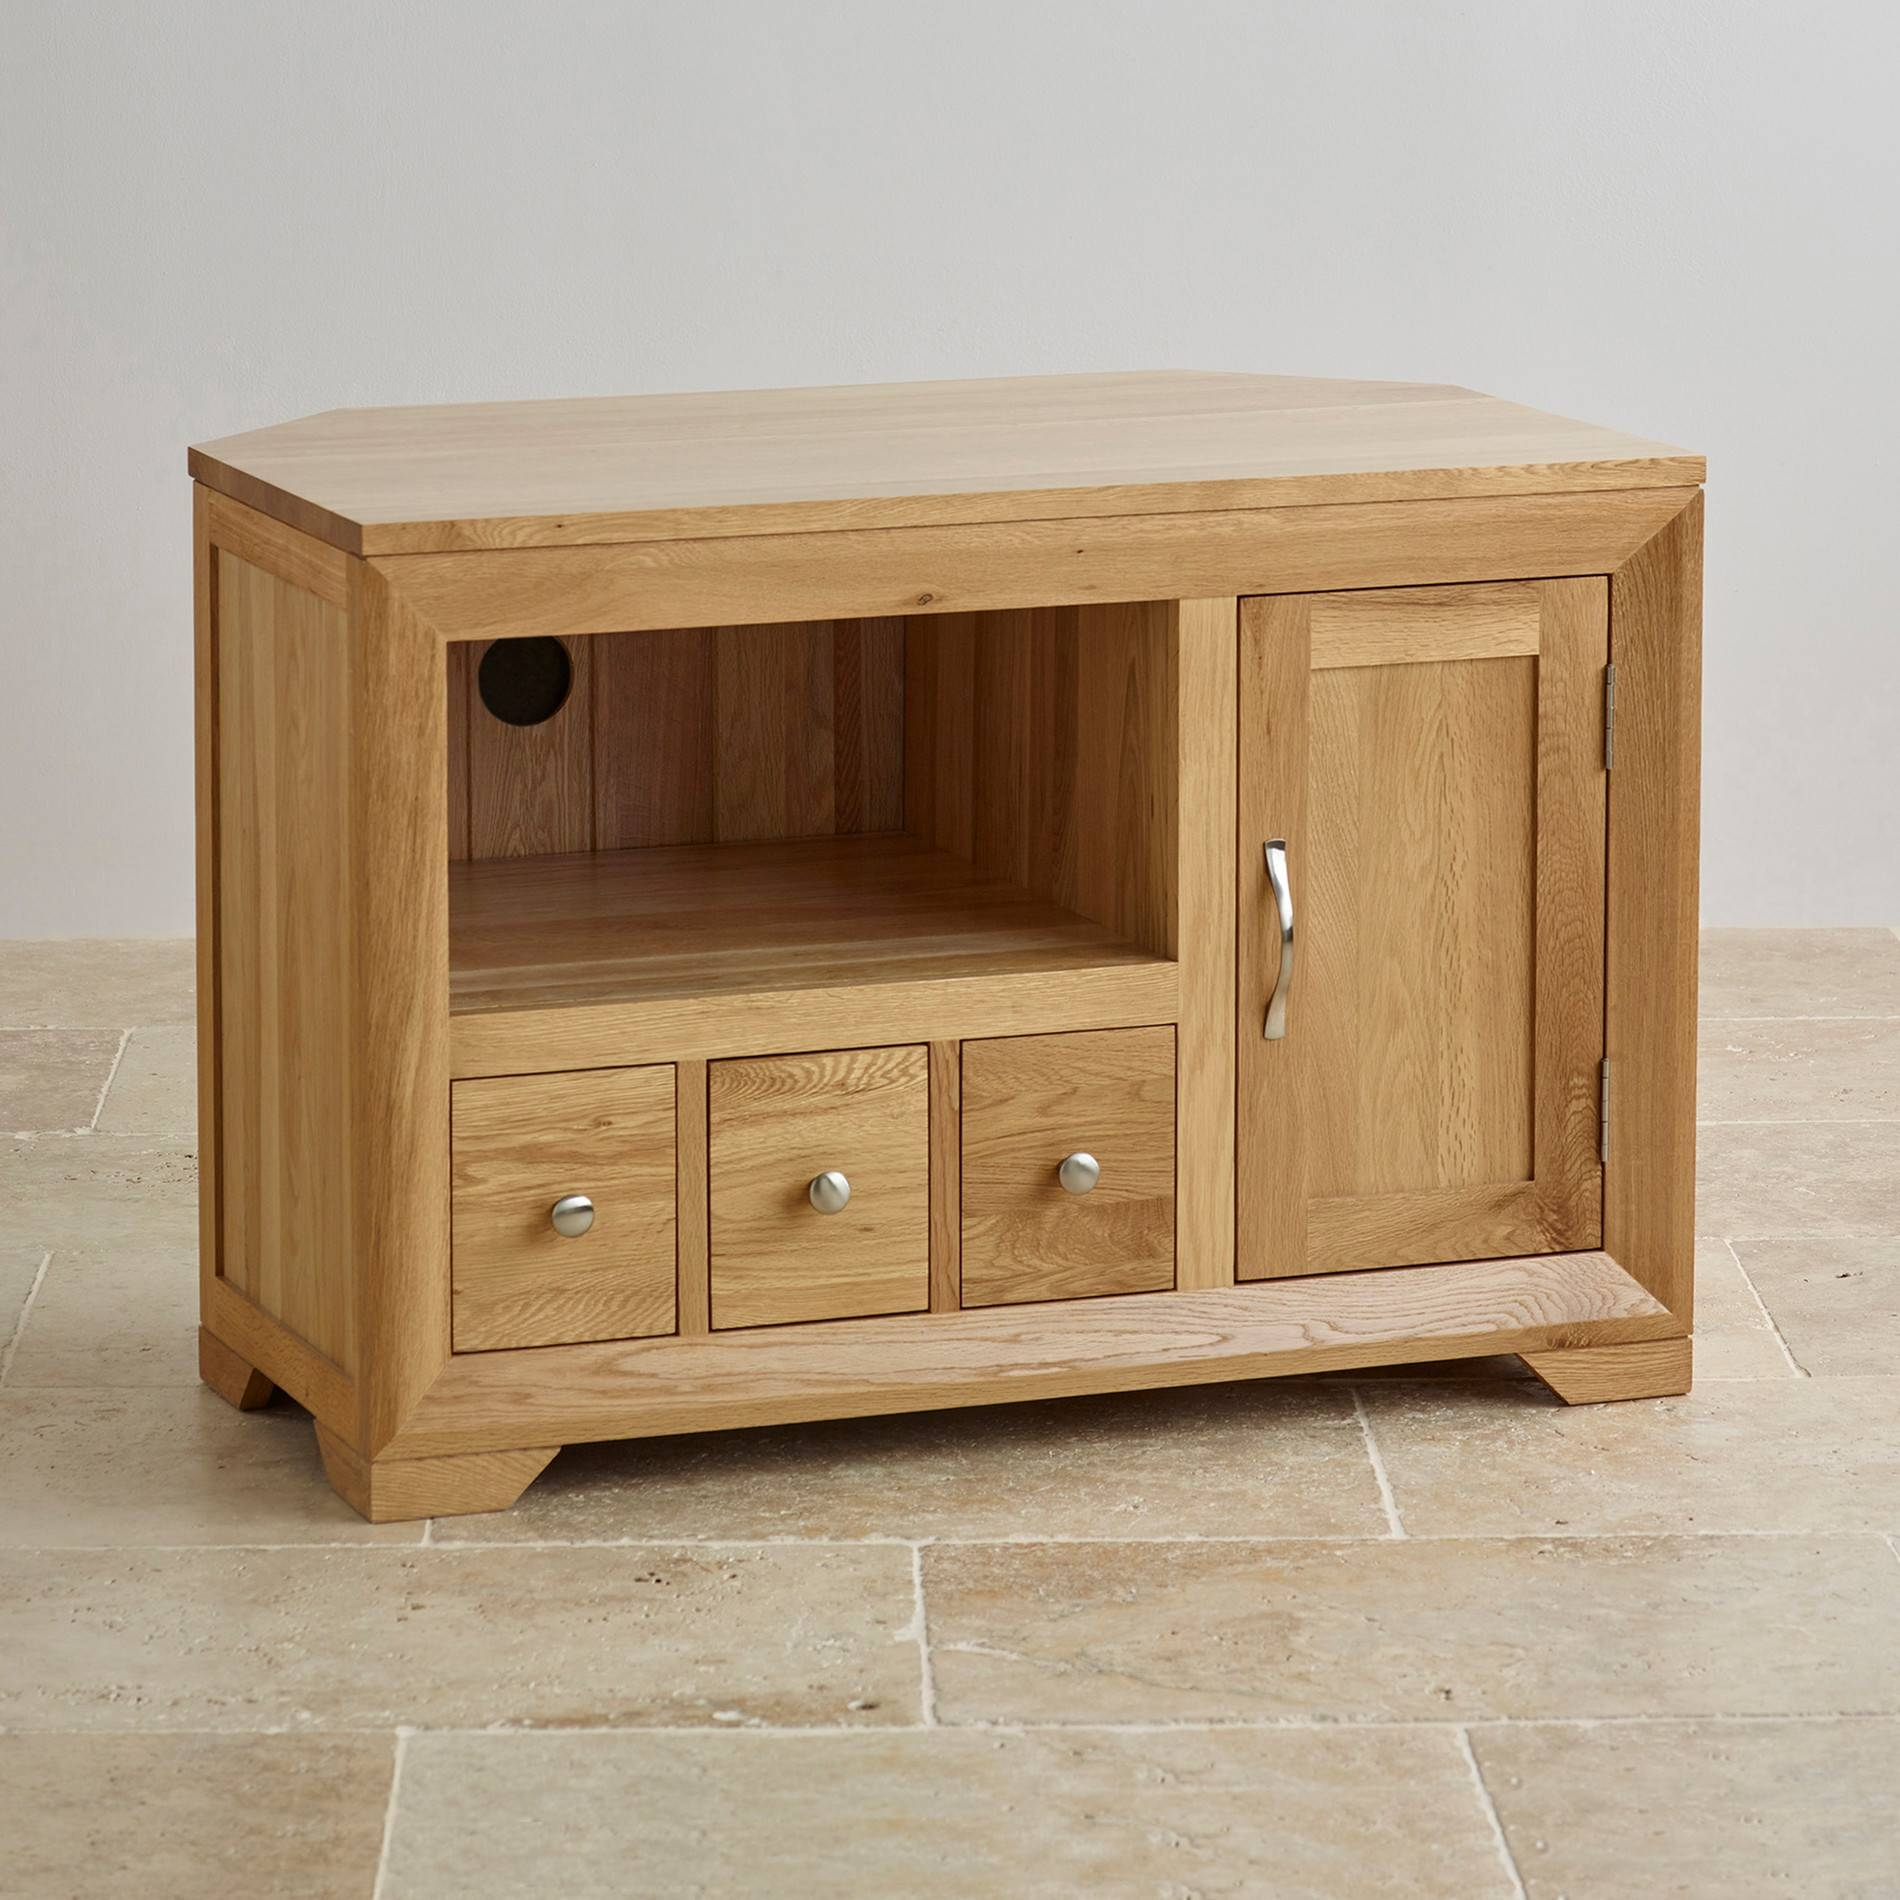 Bevel Natural Solid Oak Widescreen Tv + Dvd Cabinet Regarding Small Oak Corner Tv Stands (View 1 of 15)